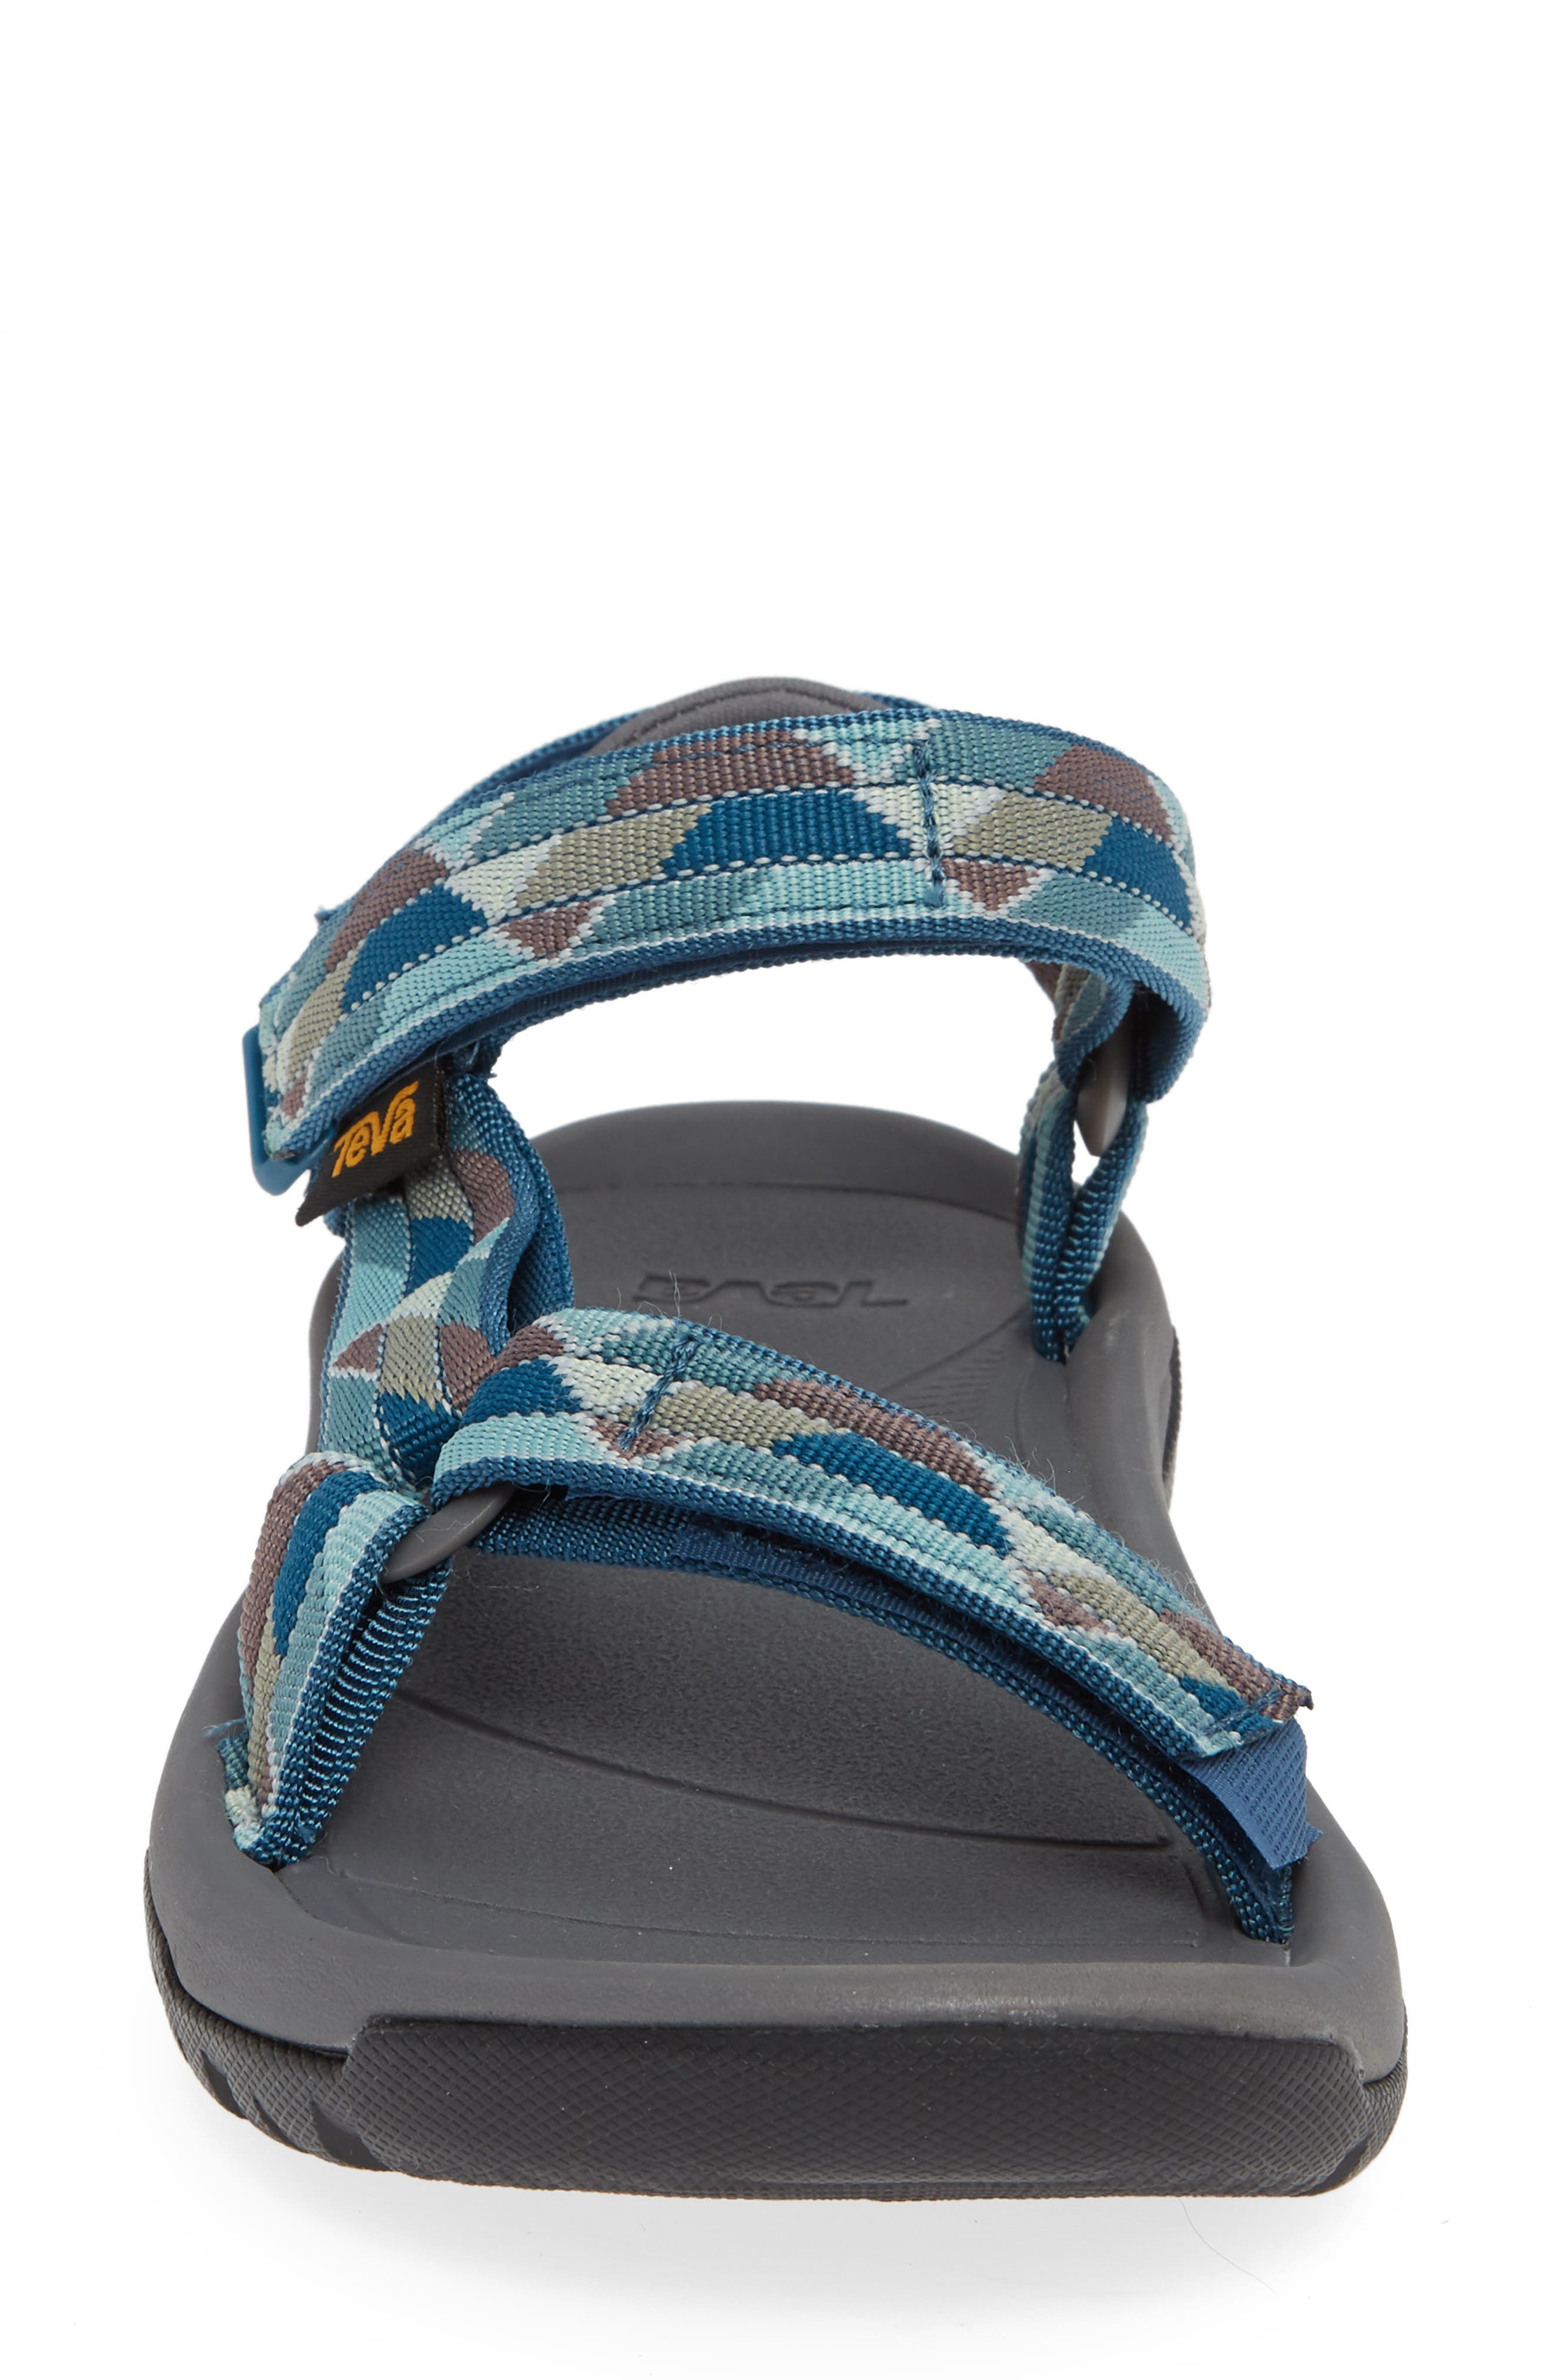 Hurricane XLT 2 Sandal,                             Alternate thumbnail 4, color,                             BLUE FABRIC